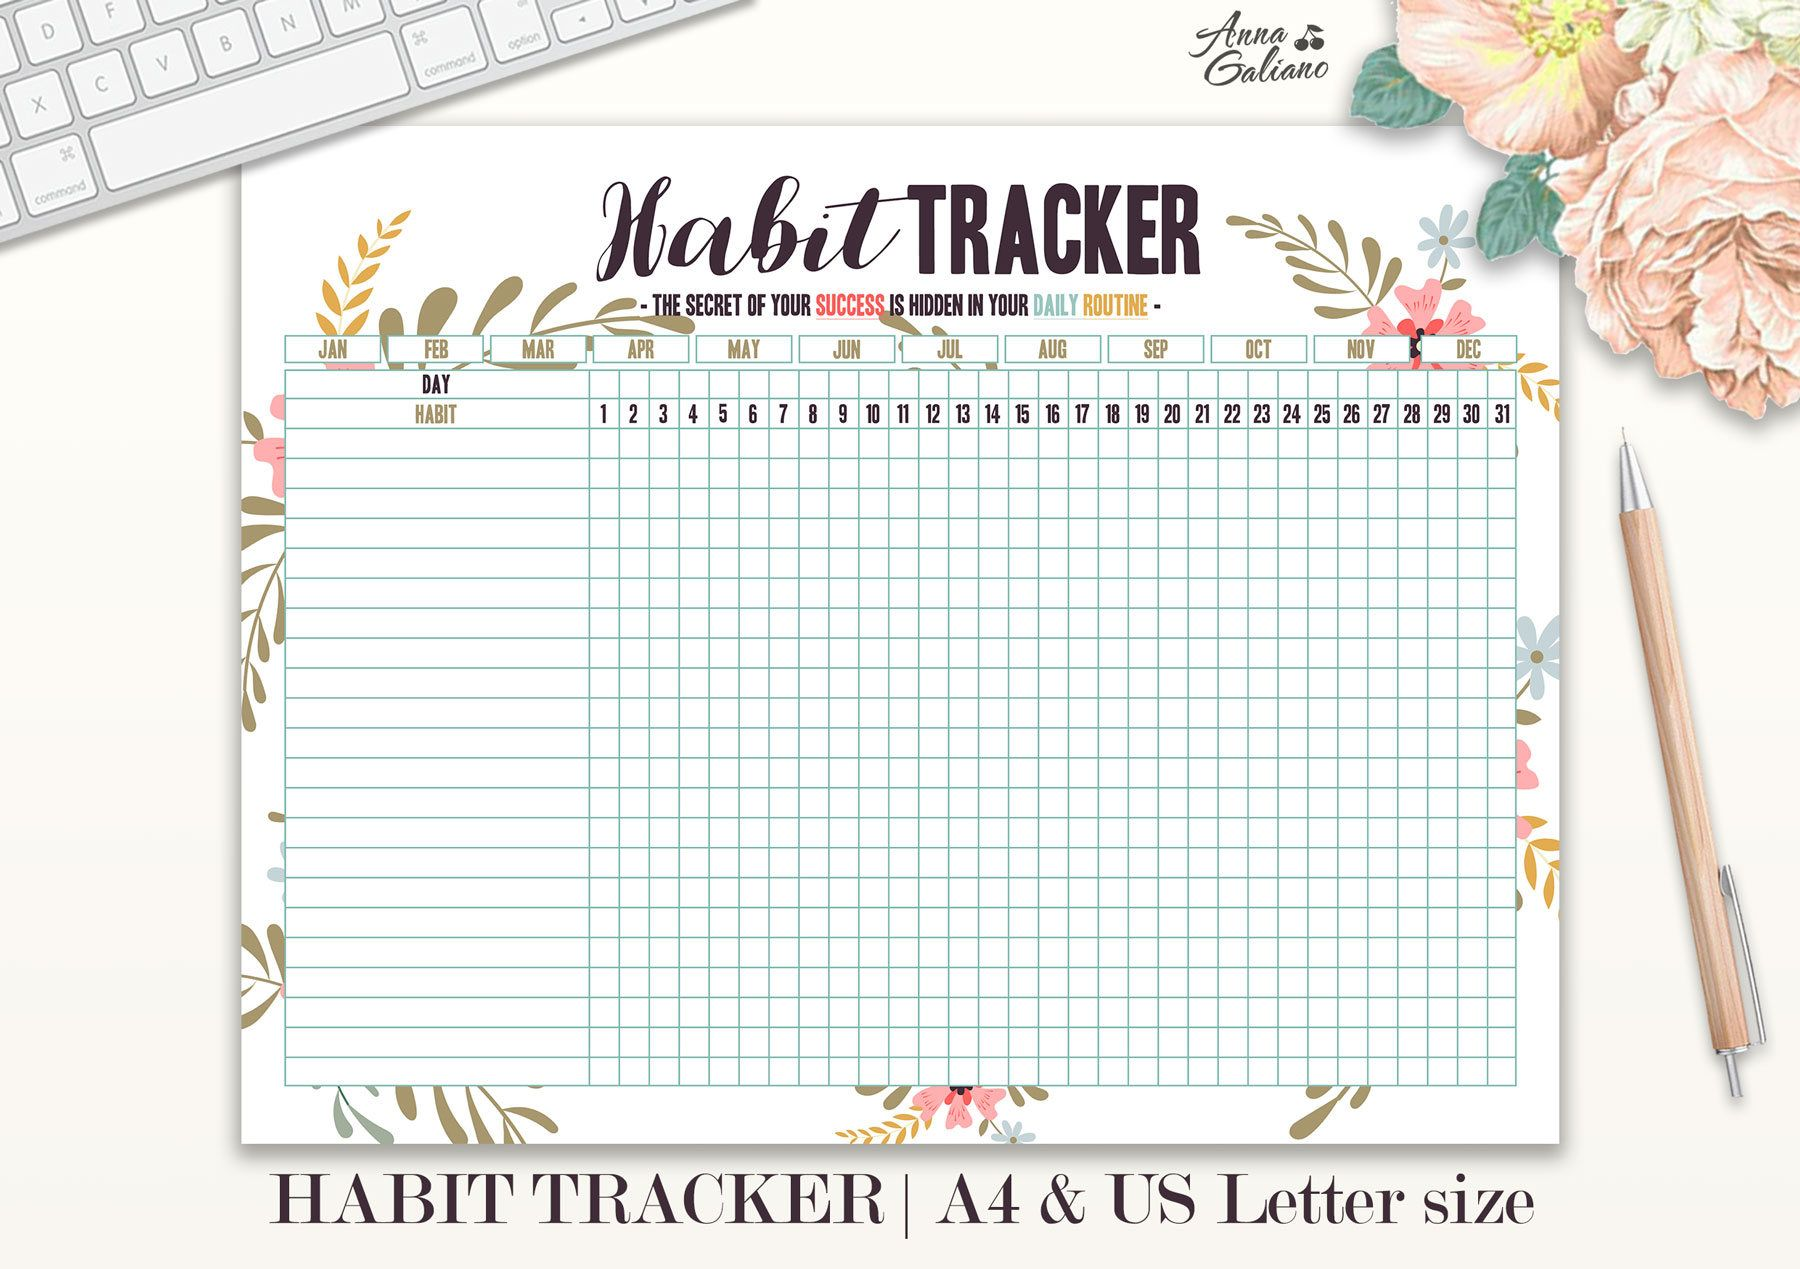 It is an image of Monthly Habit Tracker Printable with regard to motivation